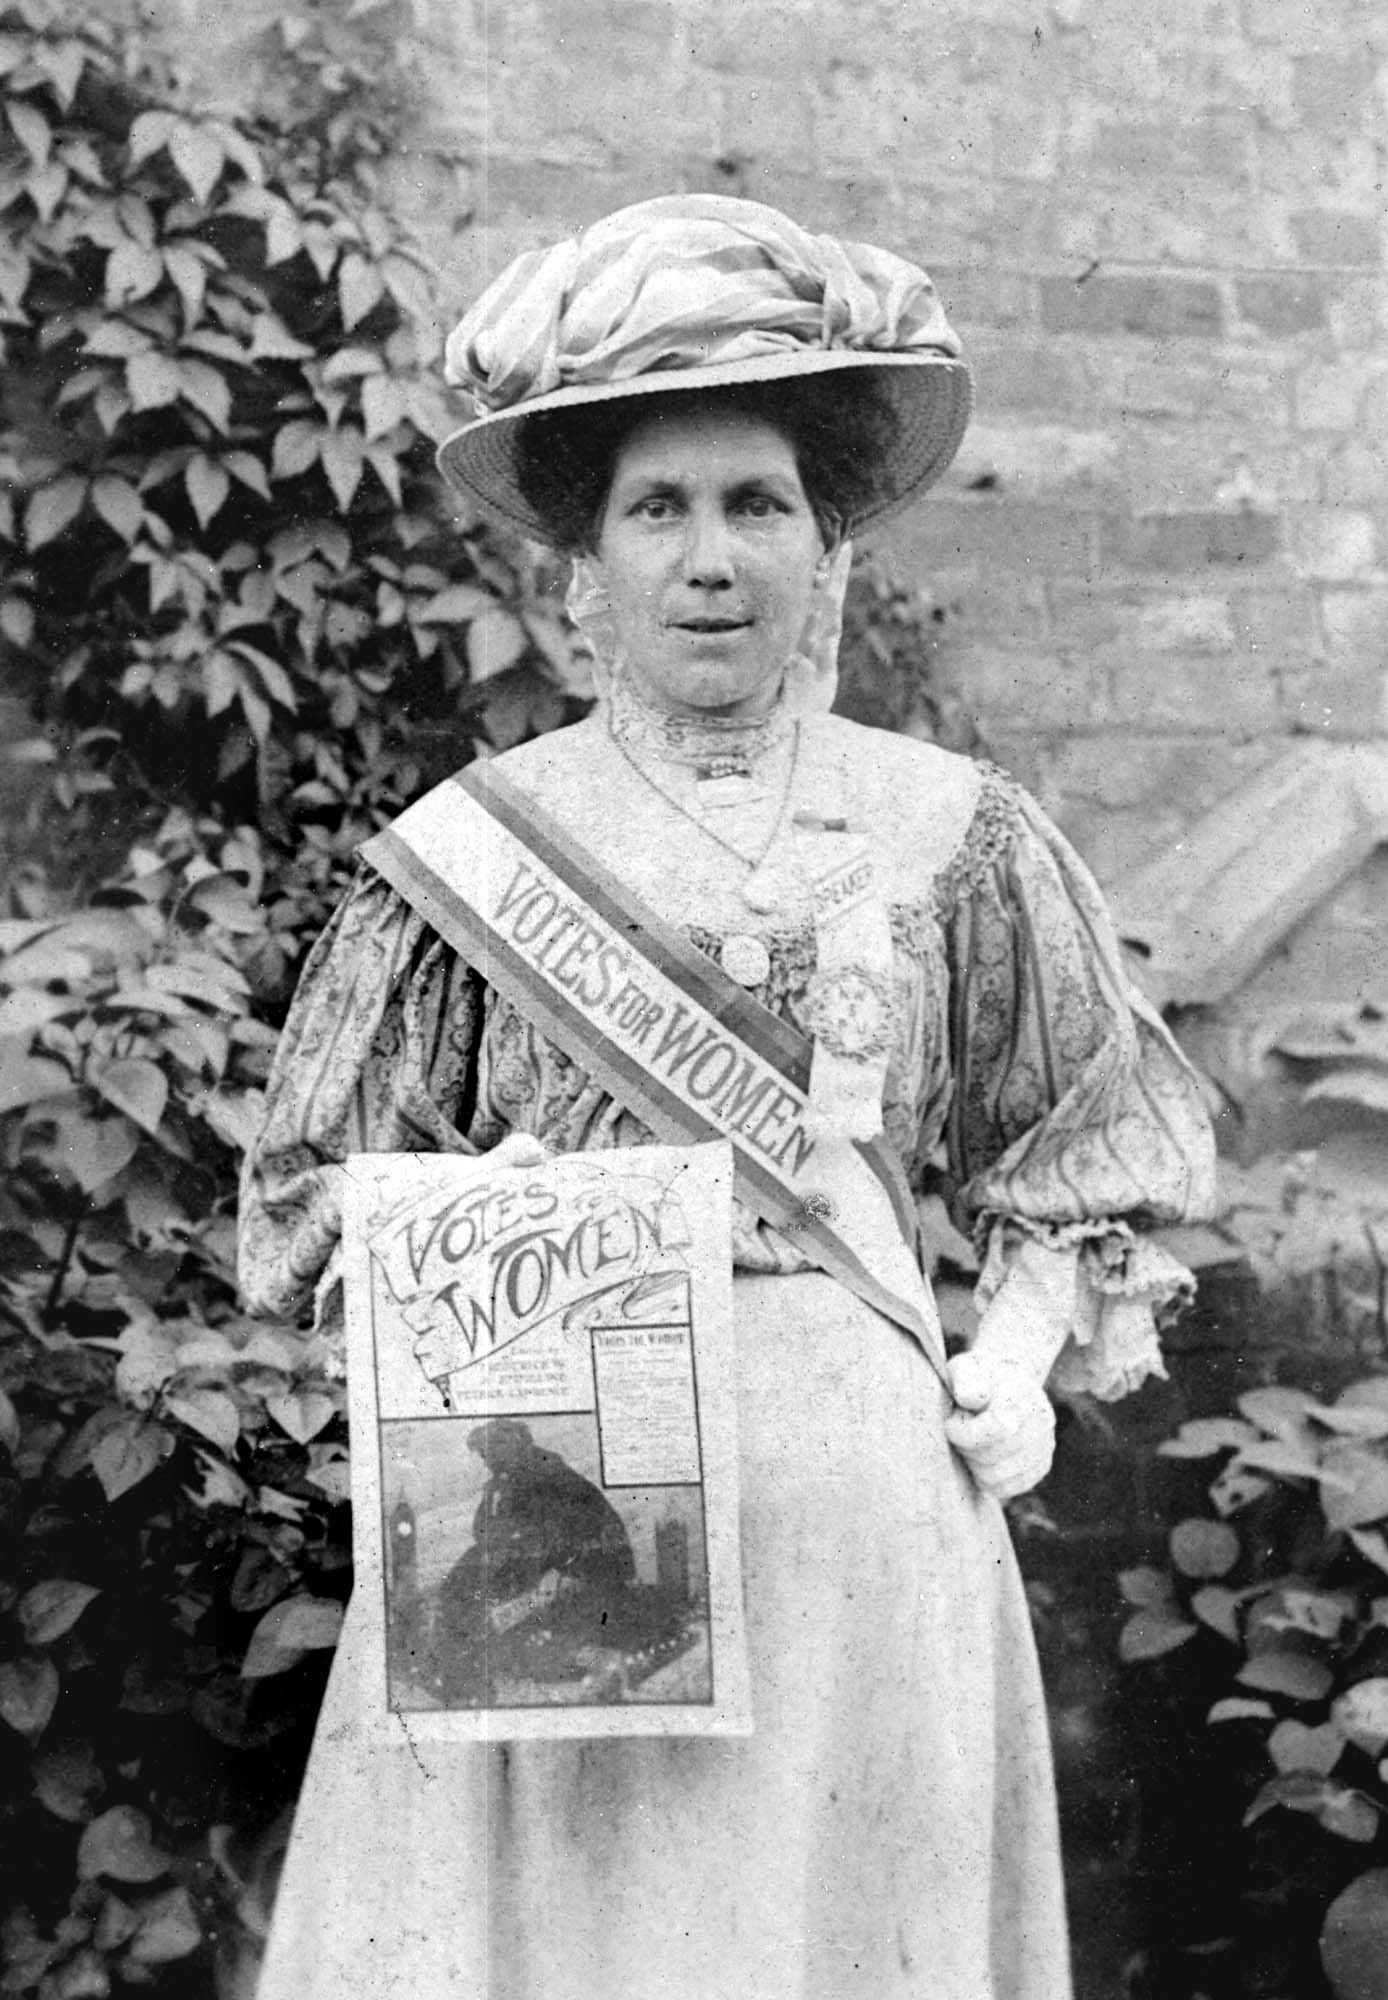 A portrait of Alice Hawkins wearing her suffrage sash and rosette - Peter Barratt